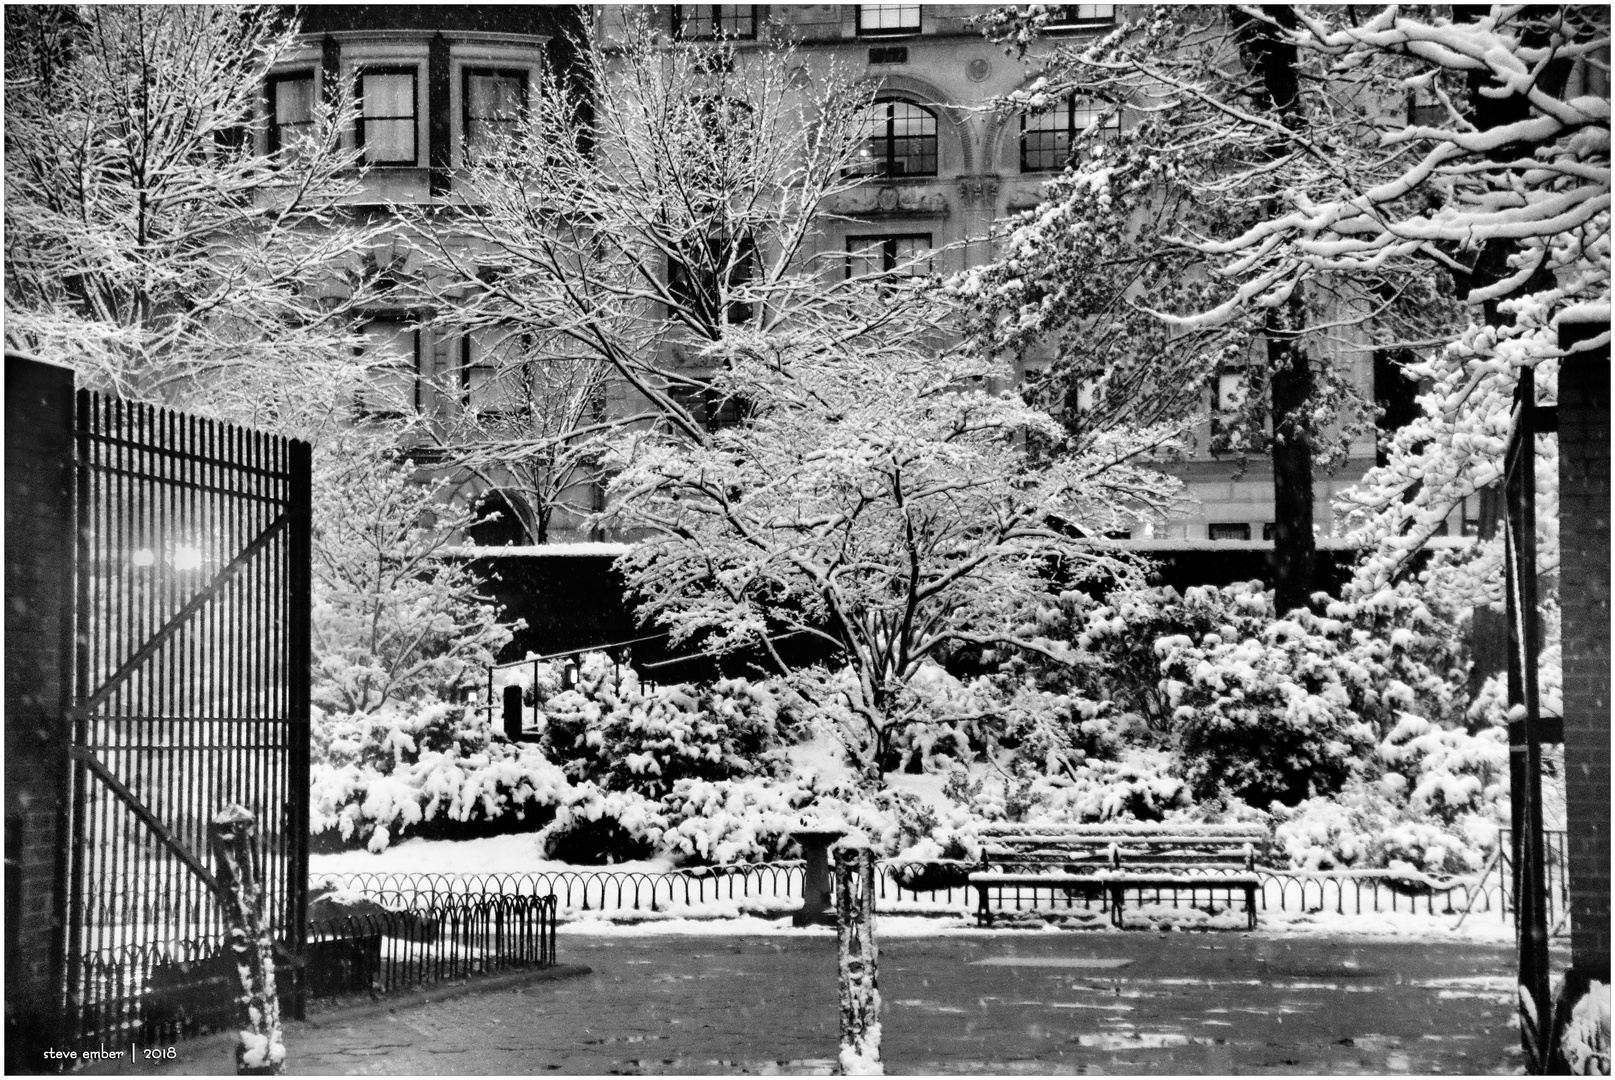 On a Snowy Evening in Central Park - No.7 - View toward 5th Ave